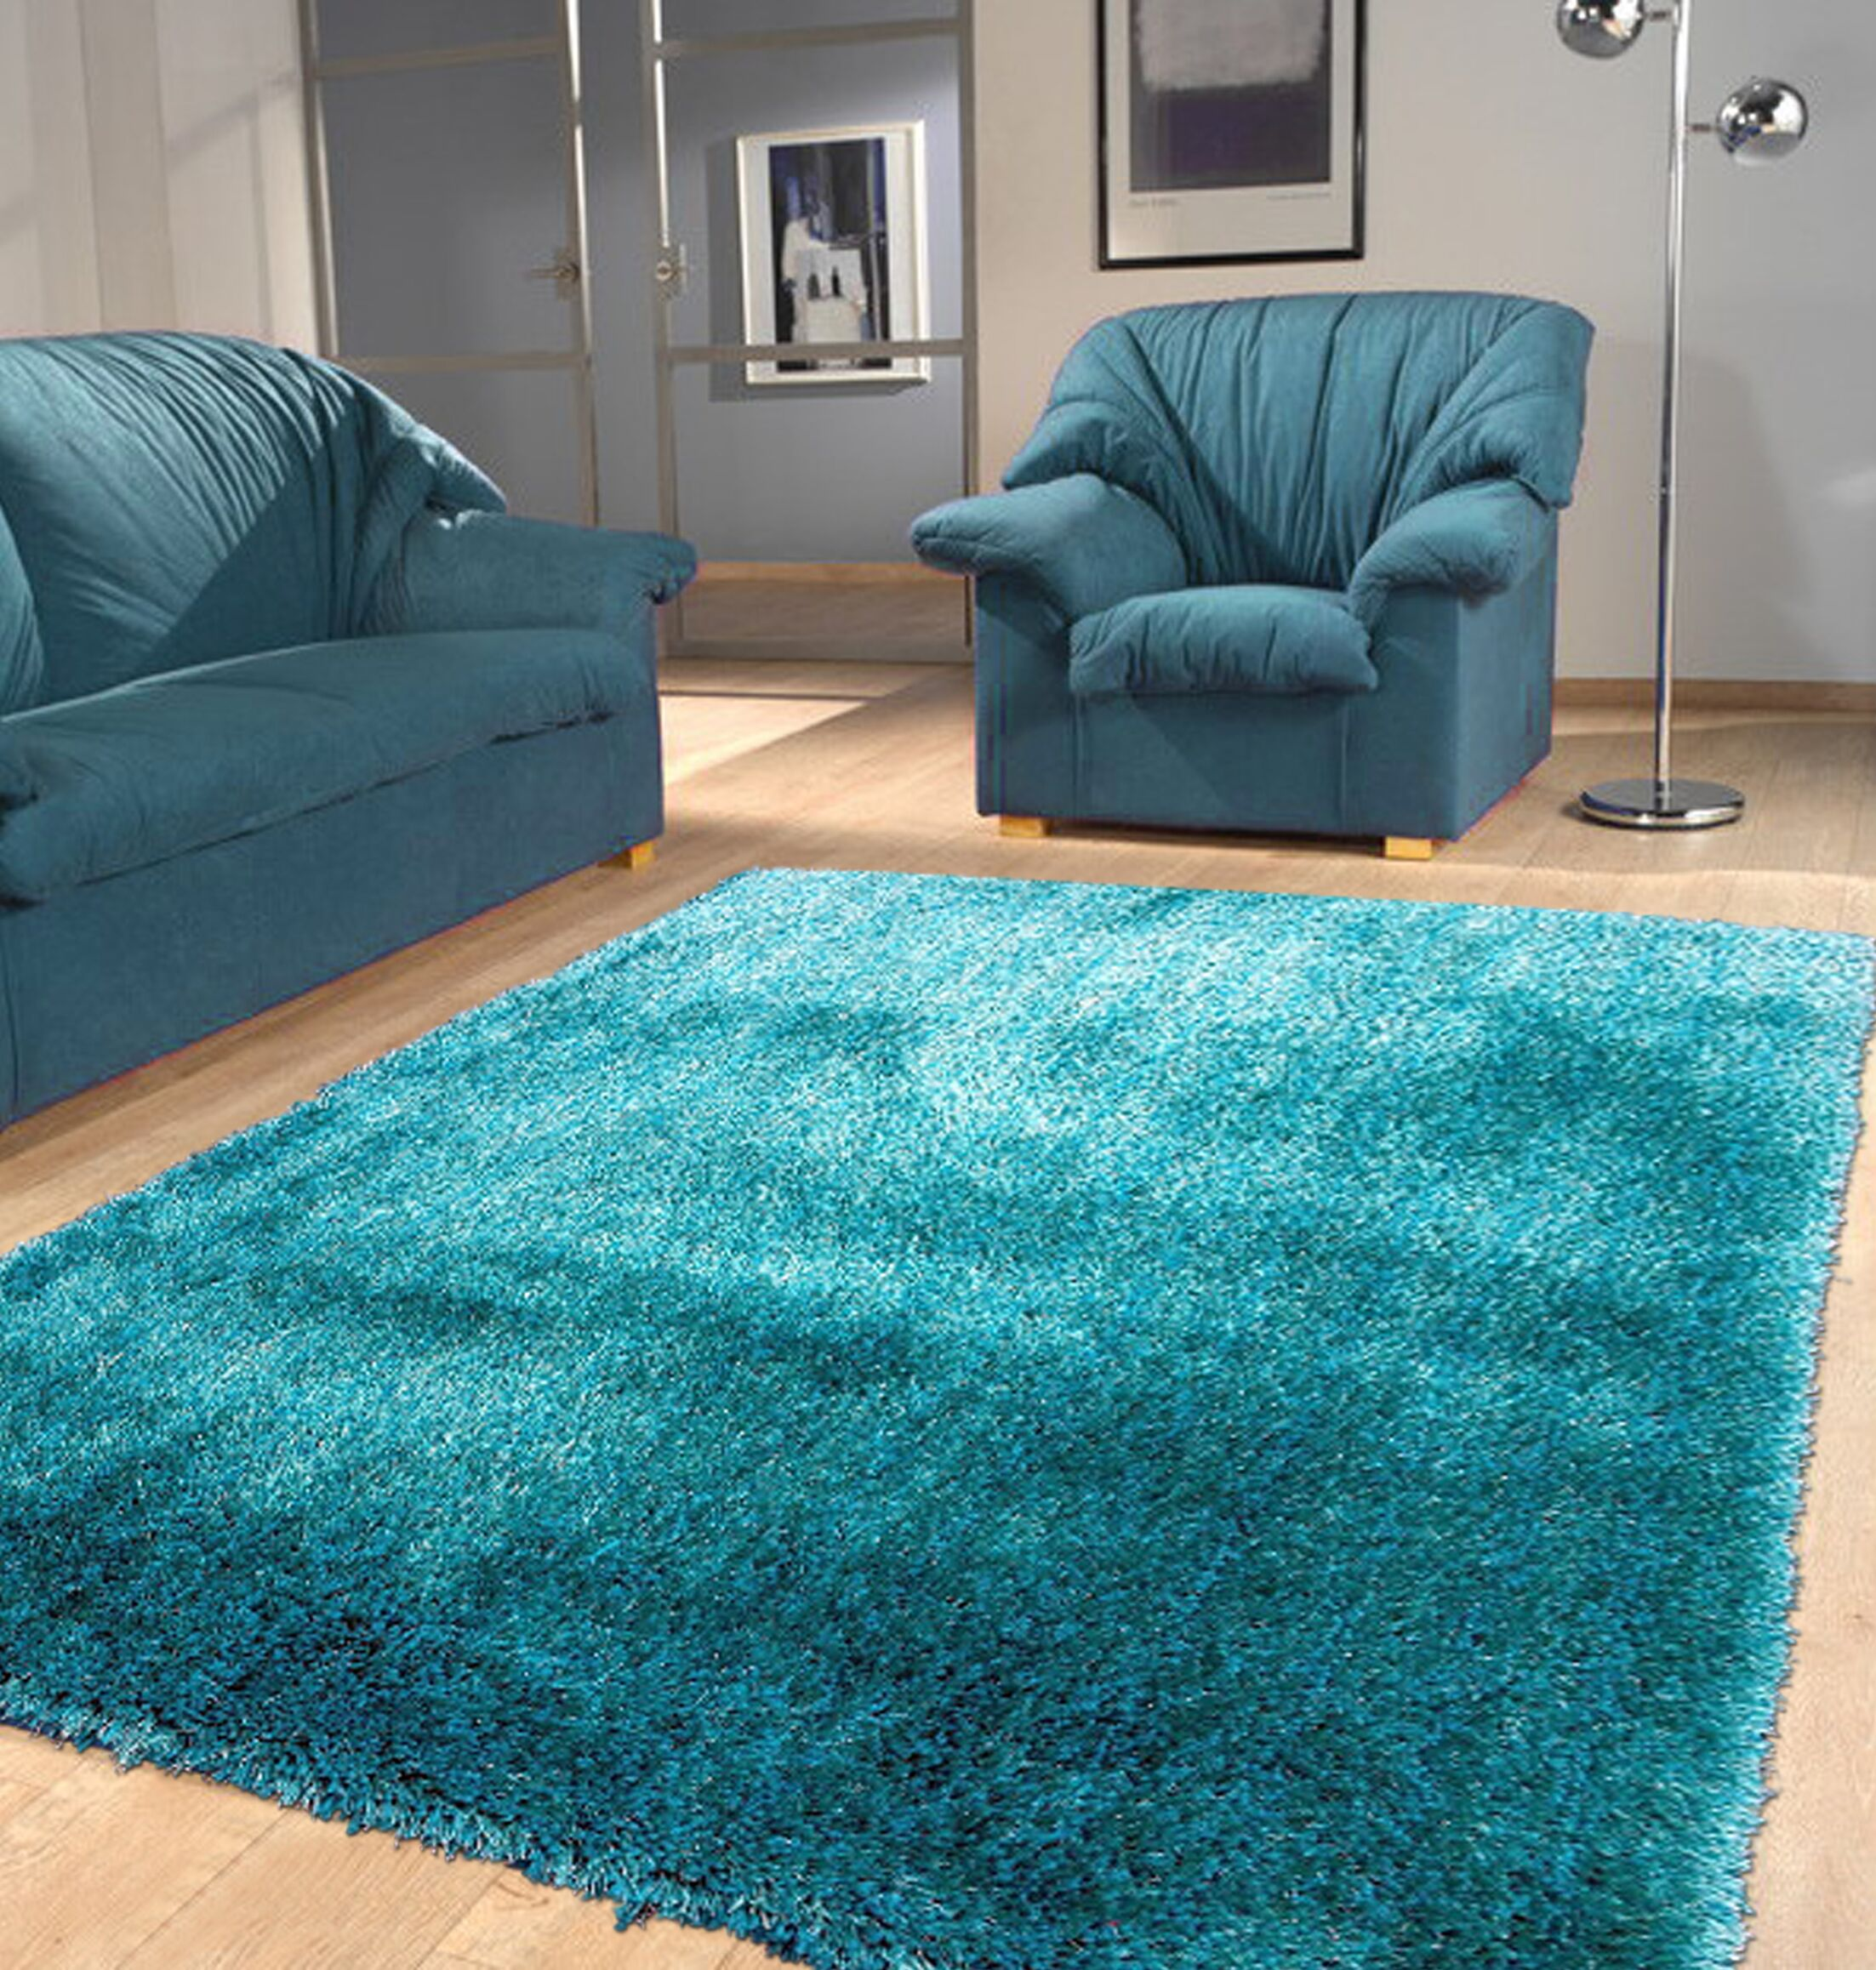 Port Pirie Shag Hand Tufted Turquoise Area Rug Rug Size: Rectangle 5' x 7'